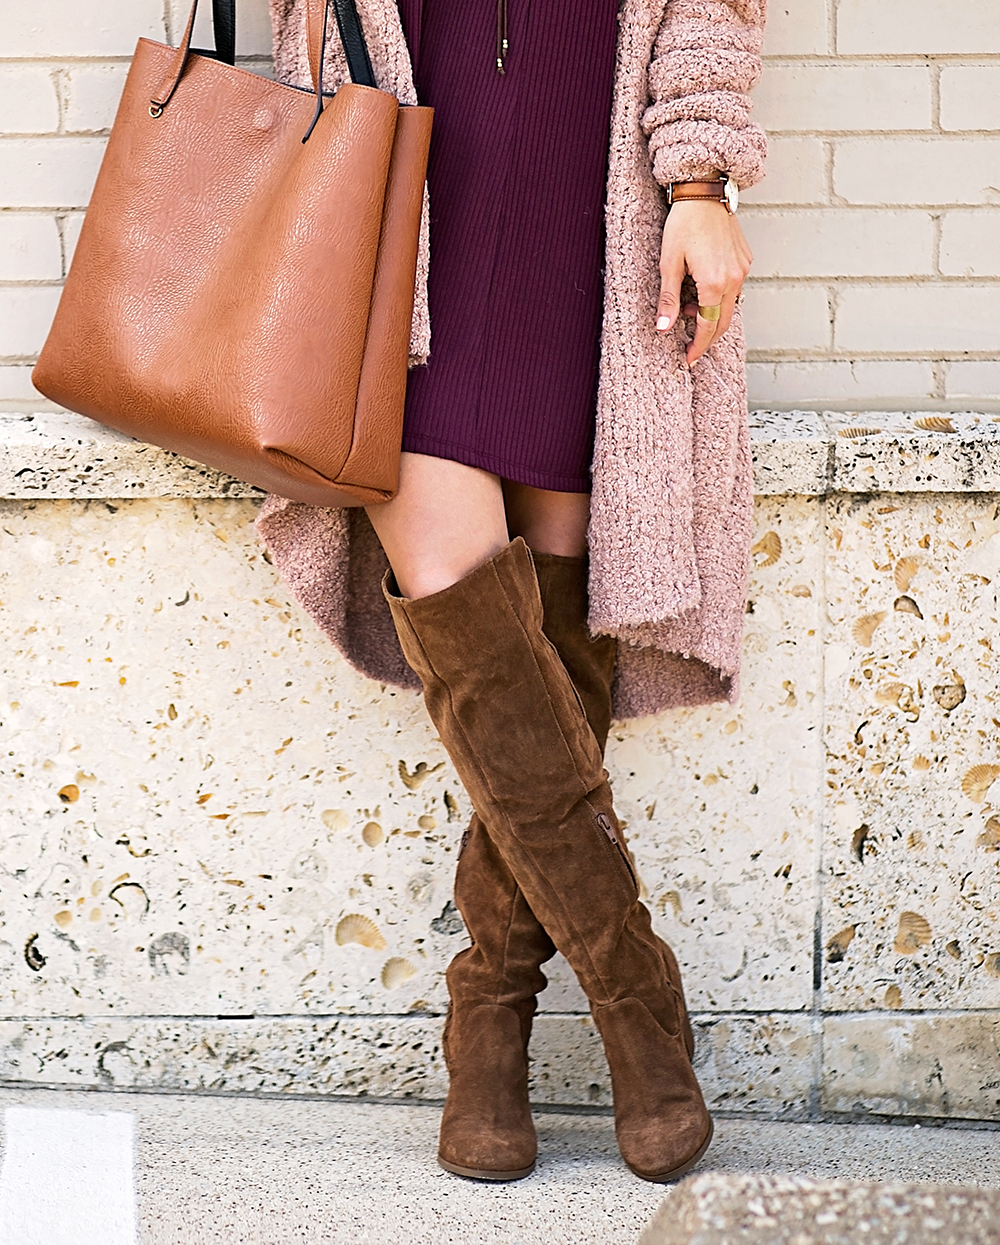 livvyland-blog-olivia-watson-cozy-fall-layers-dress-otk-boots-chunky-knit-cardigan-blush-pink-boho-outfit-7